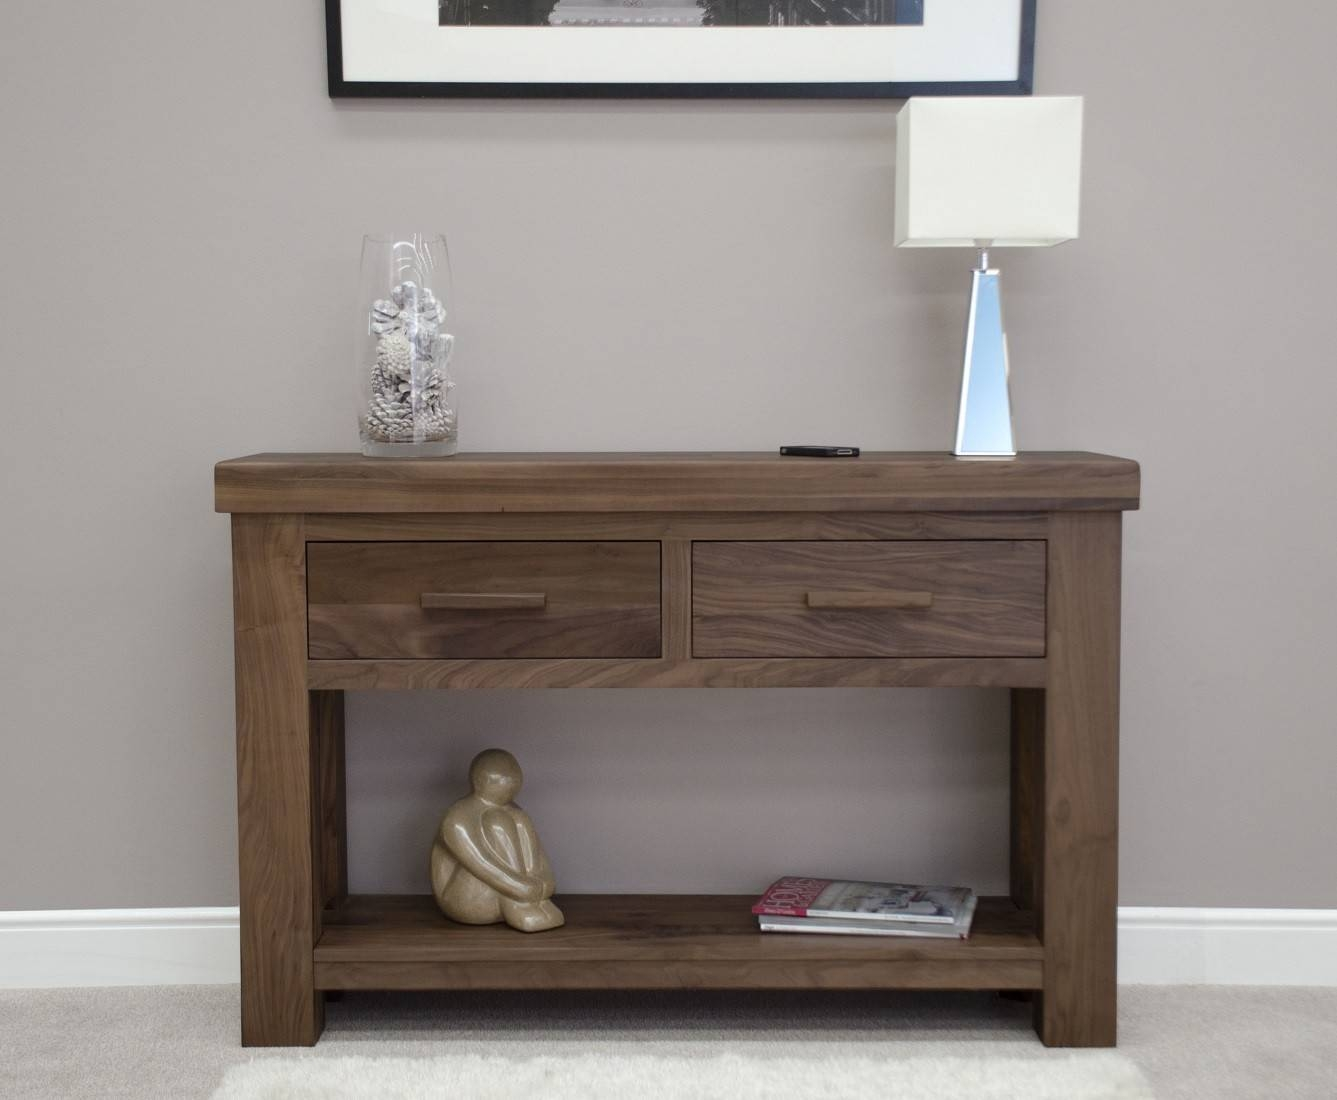 Bordeaux Solid Walnut Hall / Console Table | Oak Furniture Uk with regard to Hall Sideboards (Image 11 of 30)